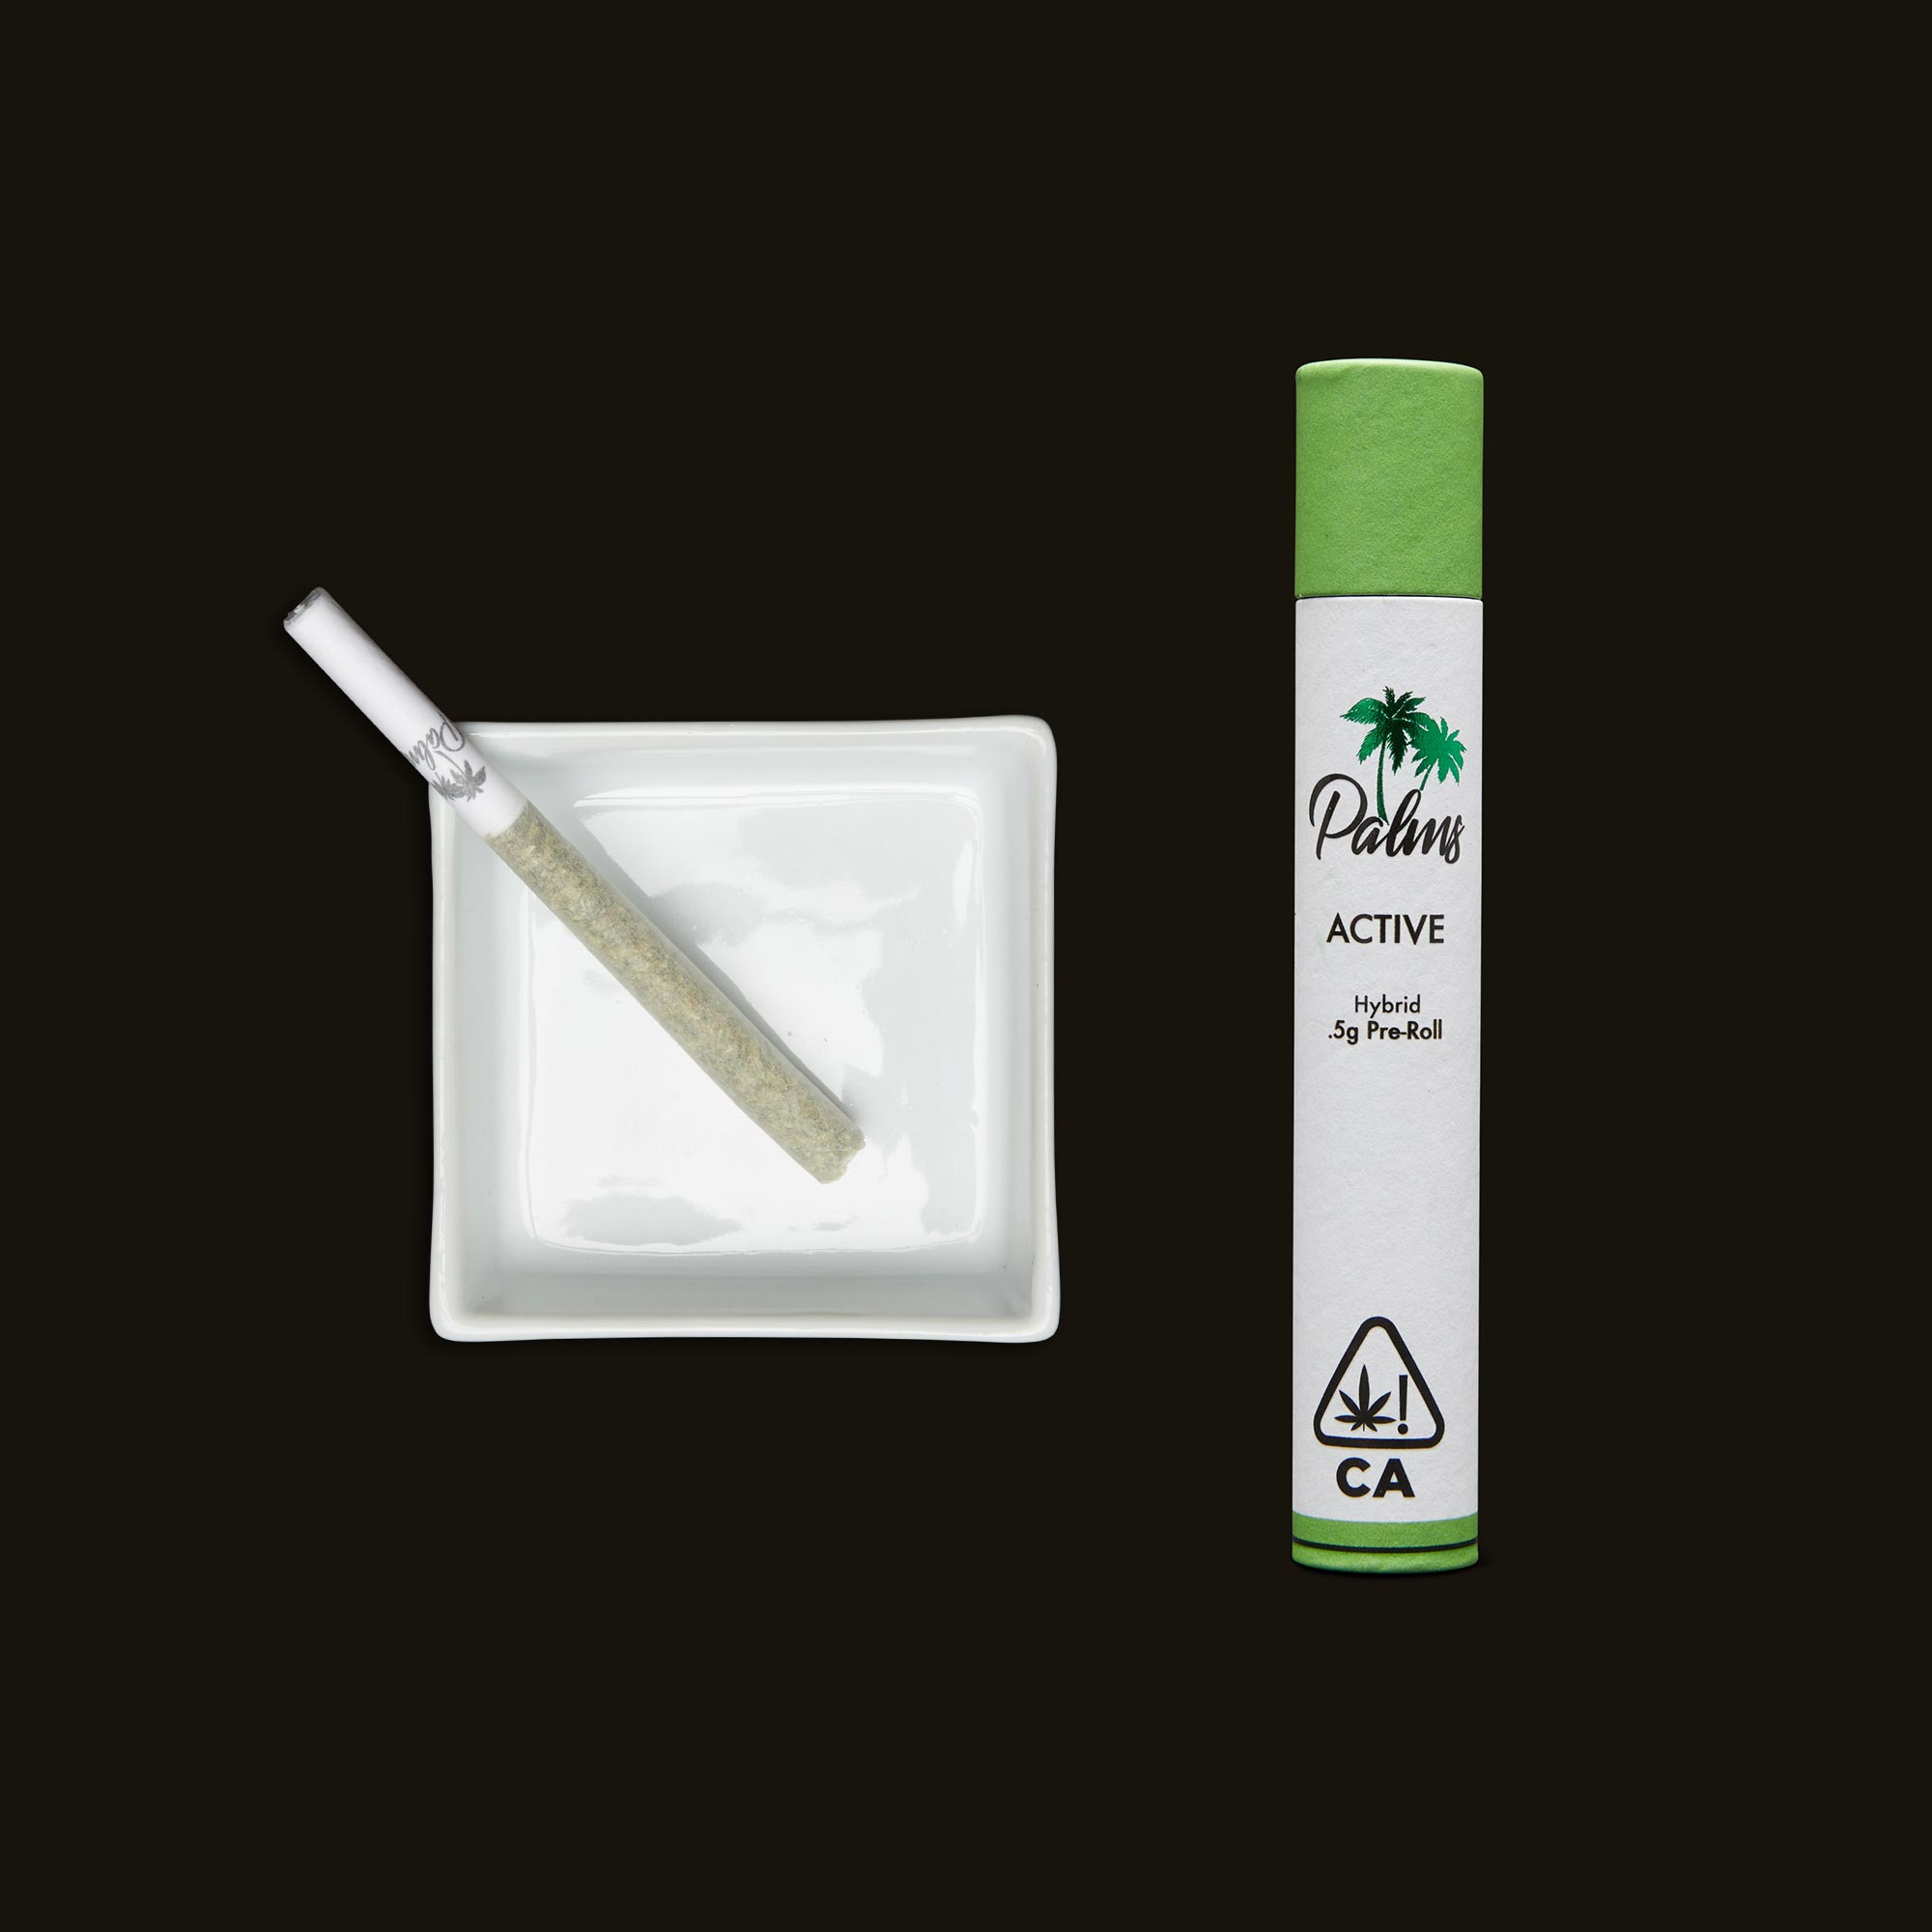 Palms Active Pre-Roll